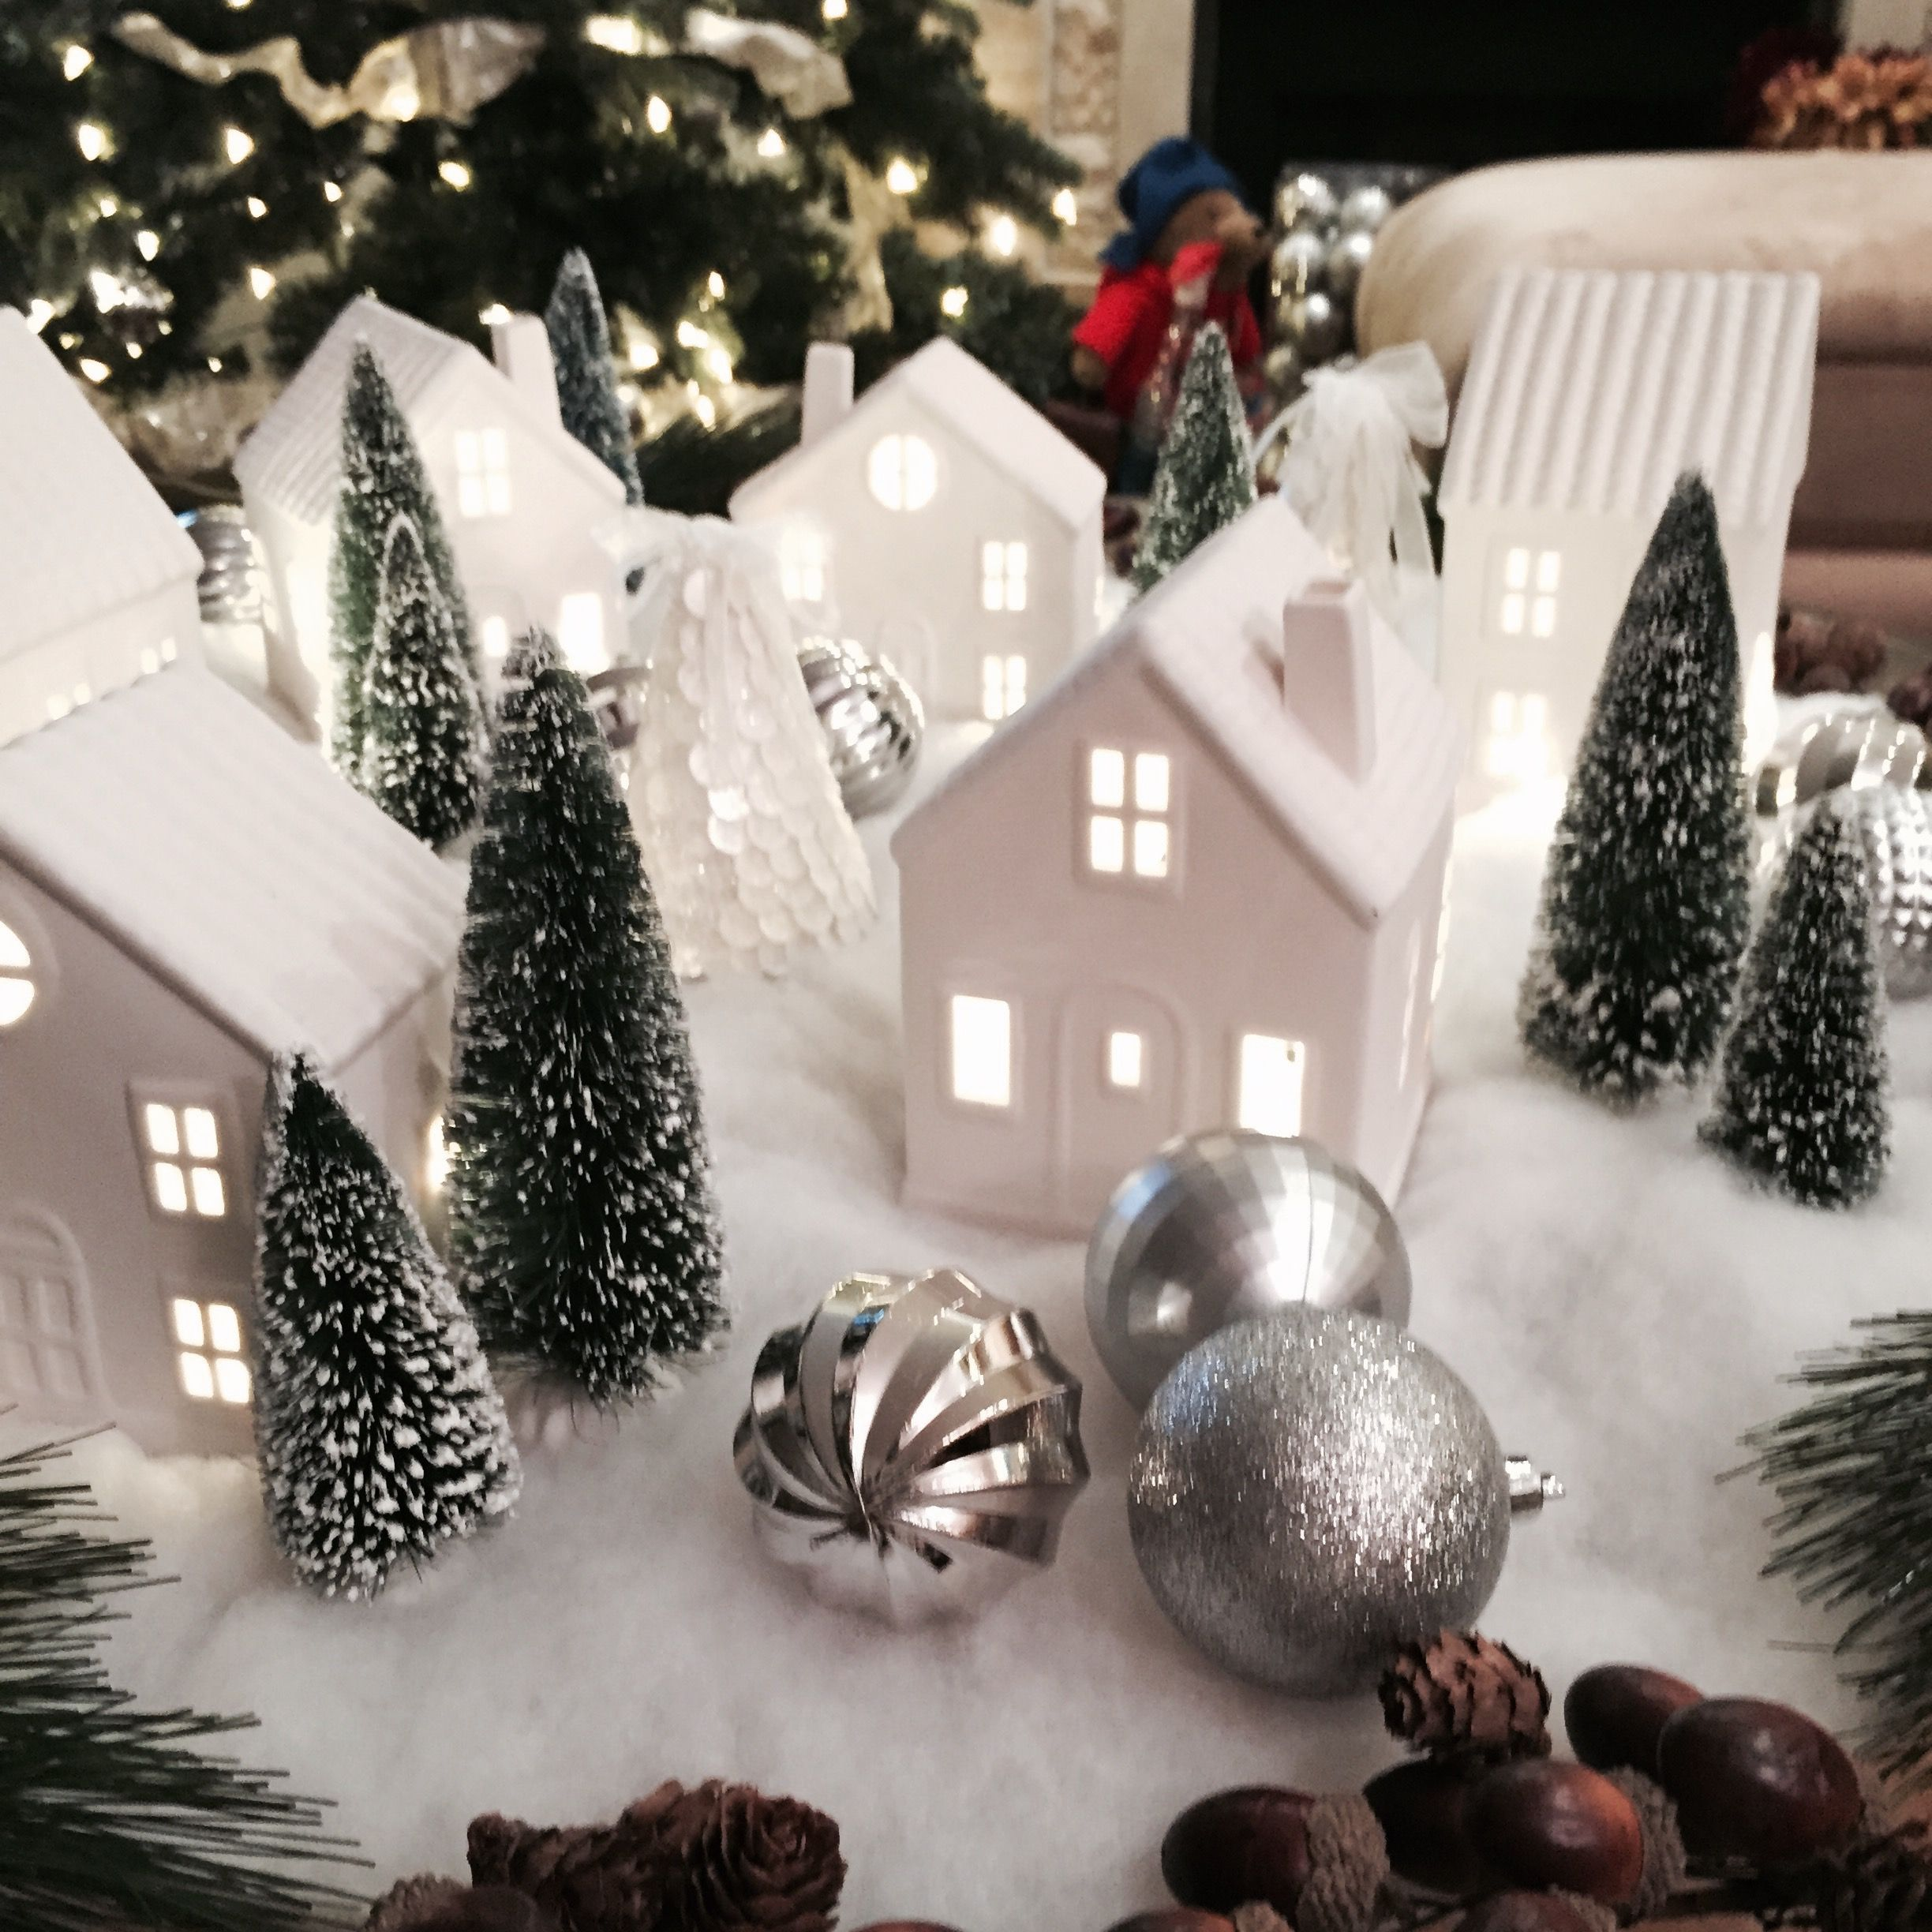 Spot De Noel Target dollar spot houses $3, trees and ornament from Joann